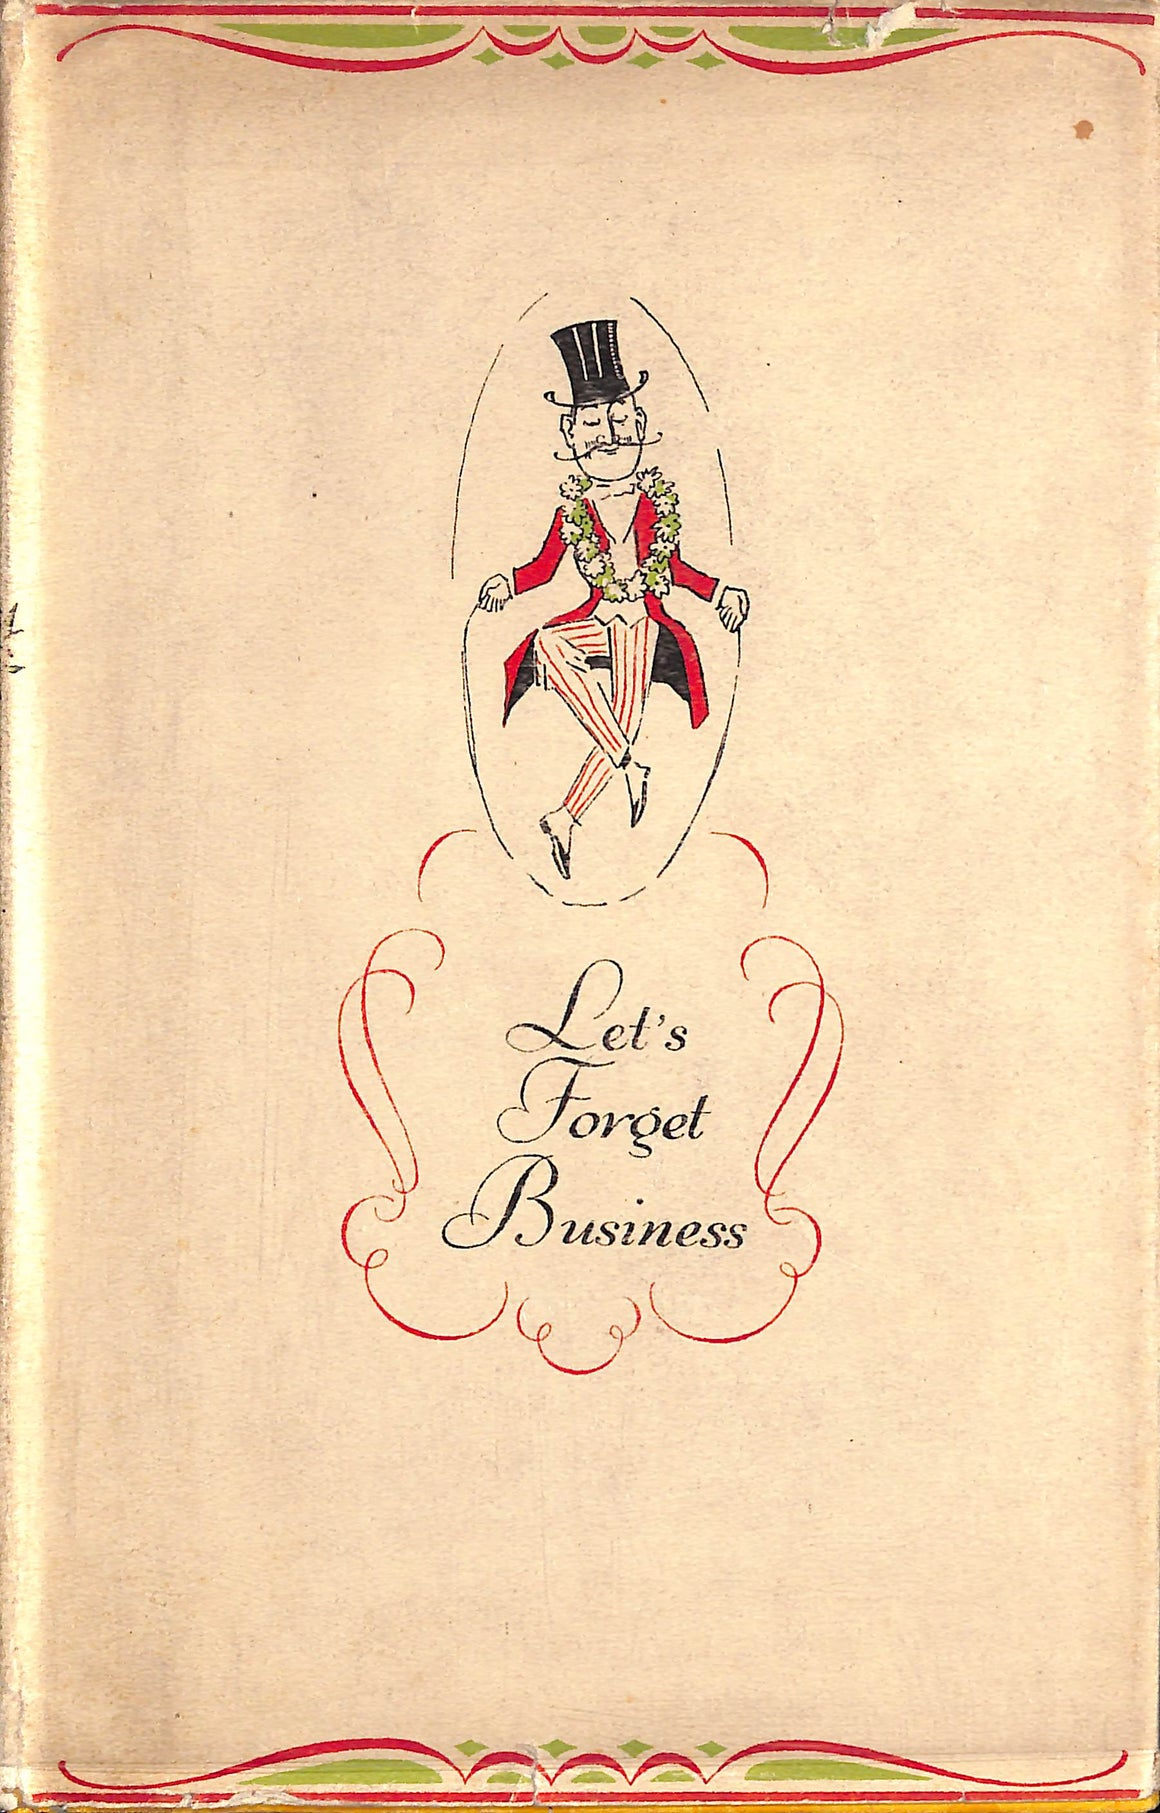 Let's Forget Business: The Commentaries of Fortnum & Mason